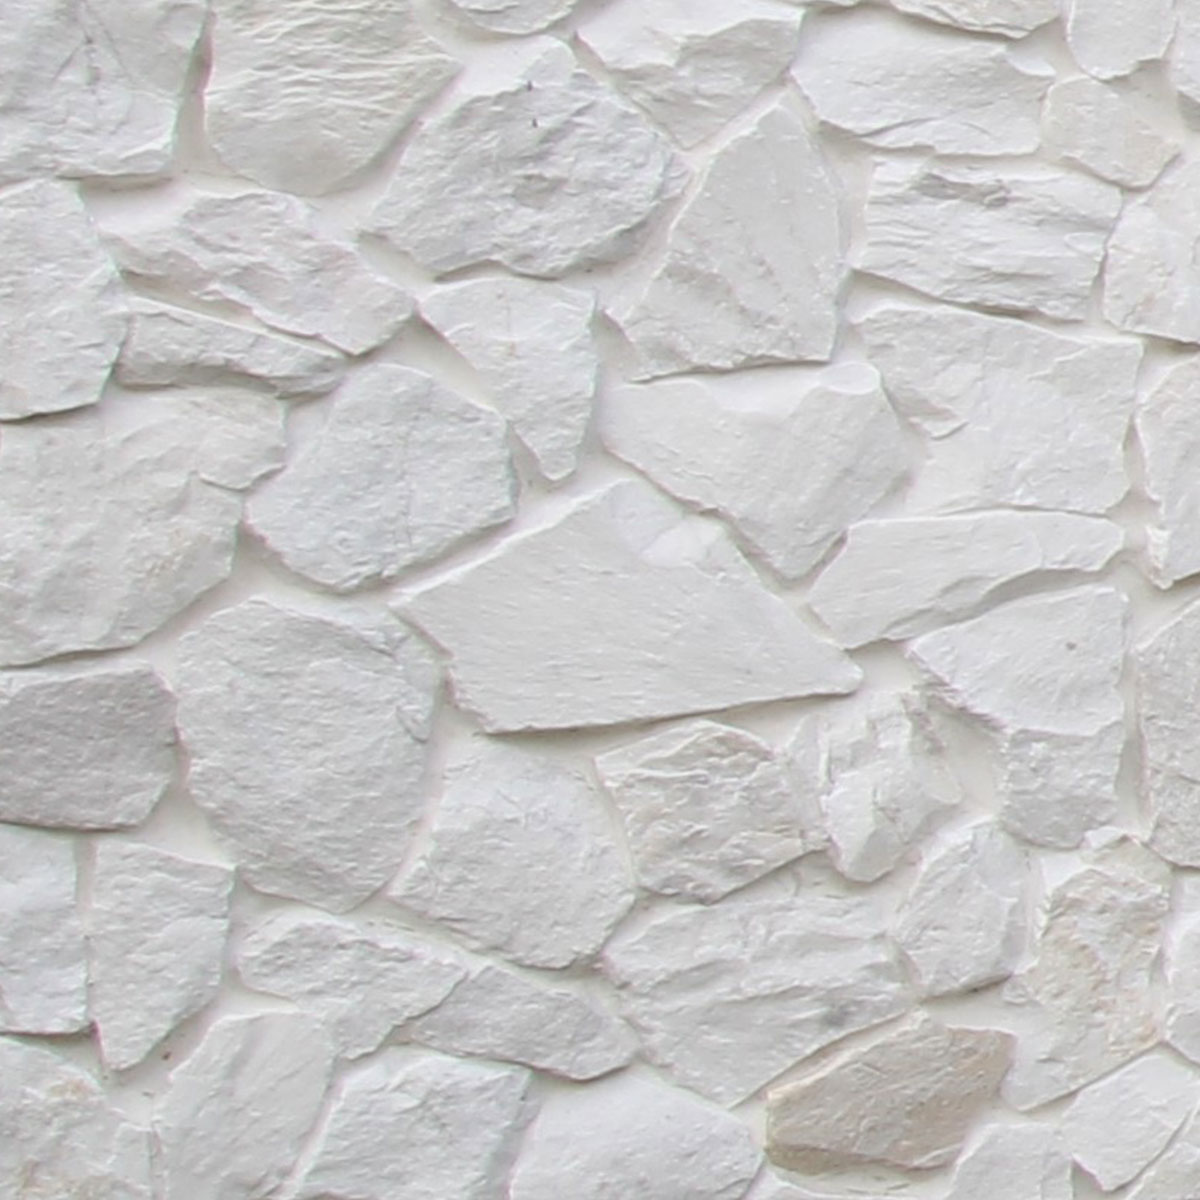 Natural Loose Stone - Vaucluse -Quartz - Natural Stone - Stone3 Brisbane